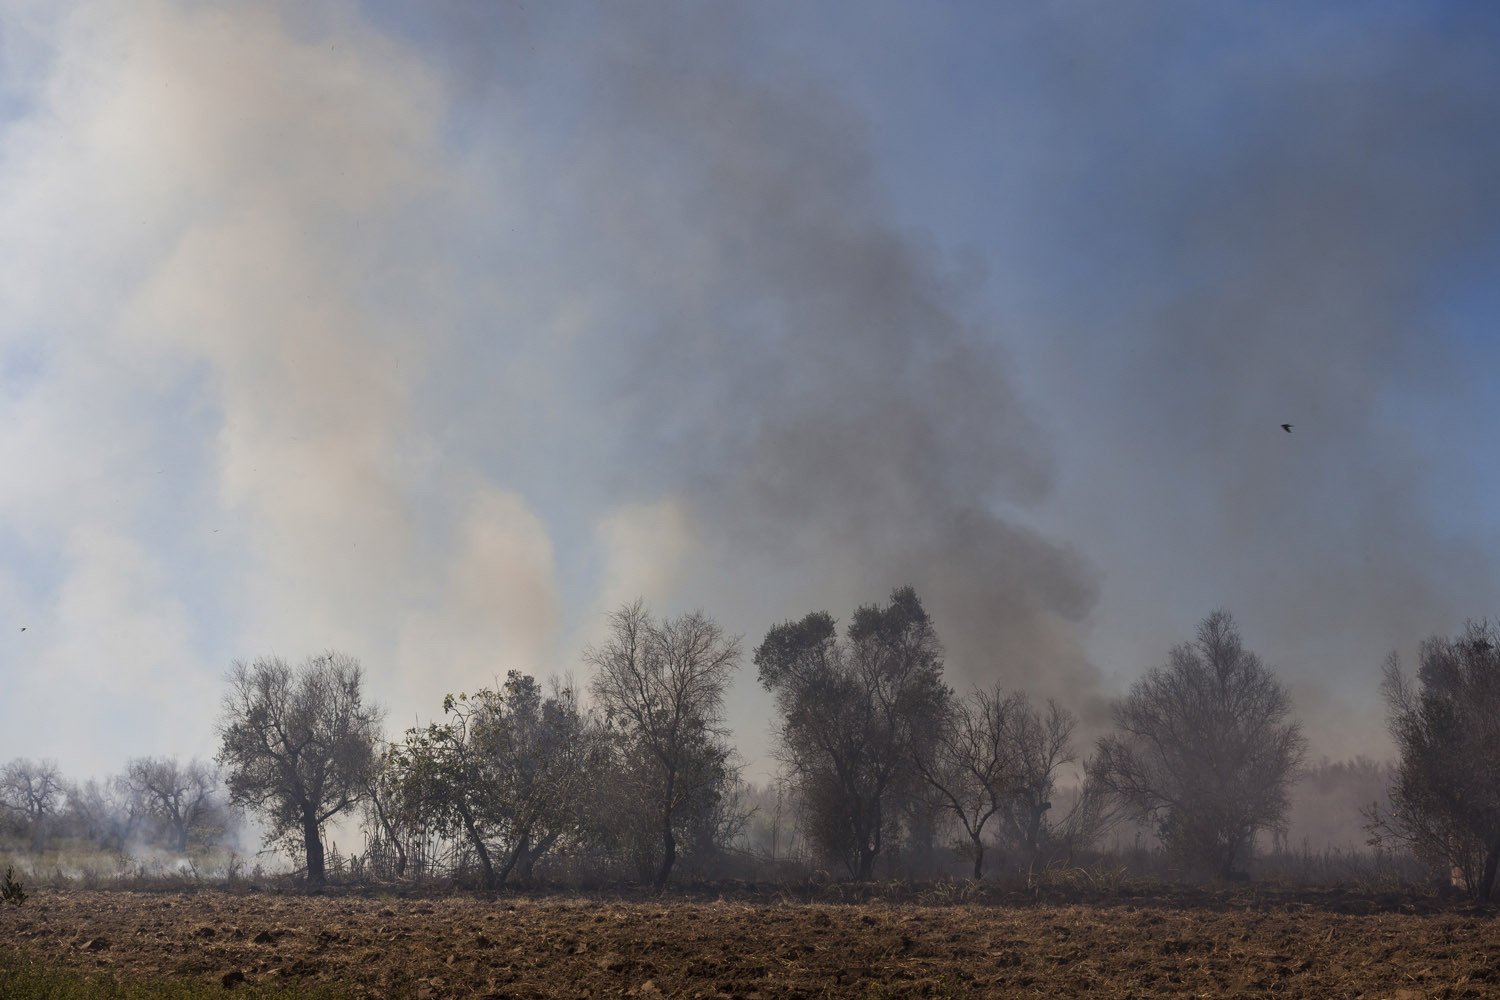 This summer, the authorities reported more than 60 fires per day, stretching the emergency services beyond their limited capabilities, and leaving a persistent pall of smoke over Salento. Some say the fires are lit by the owner of the trees themselves, frustrated at the complex bureaucratic procedures required to eradicate the dead olive trees in order to re-plant. But while Italian law still protects olive trees even when they have been dead for years, nobody cares if they burn.